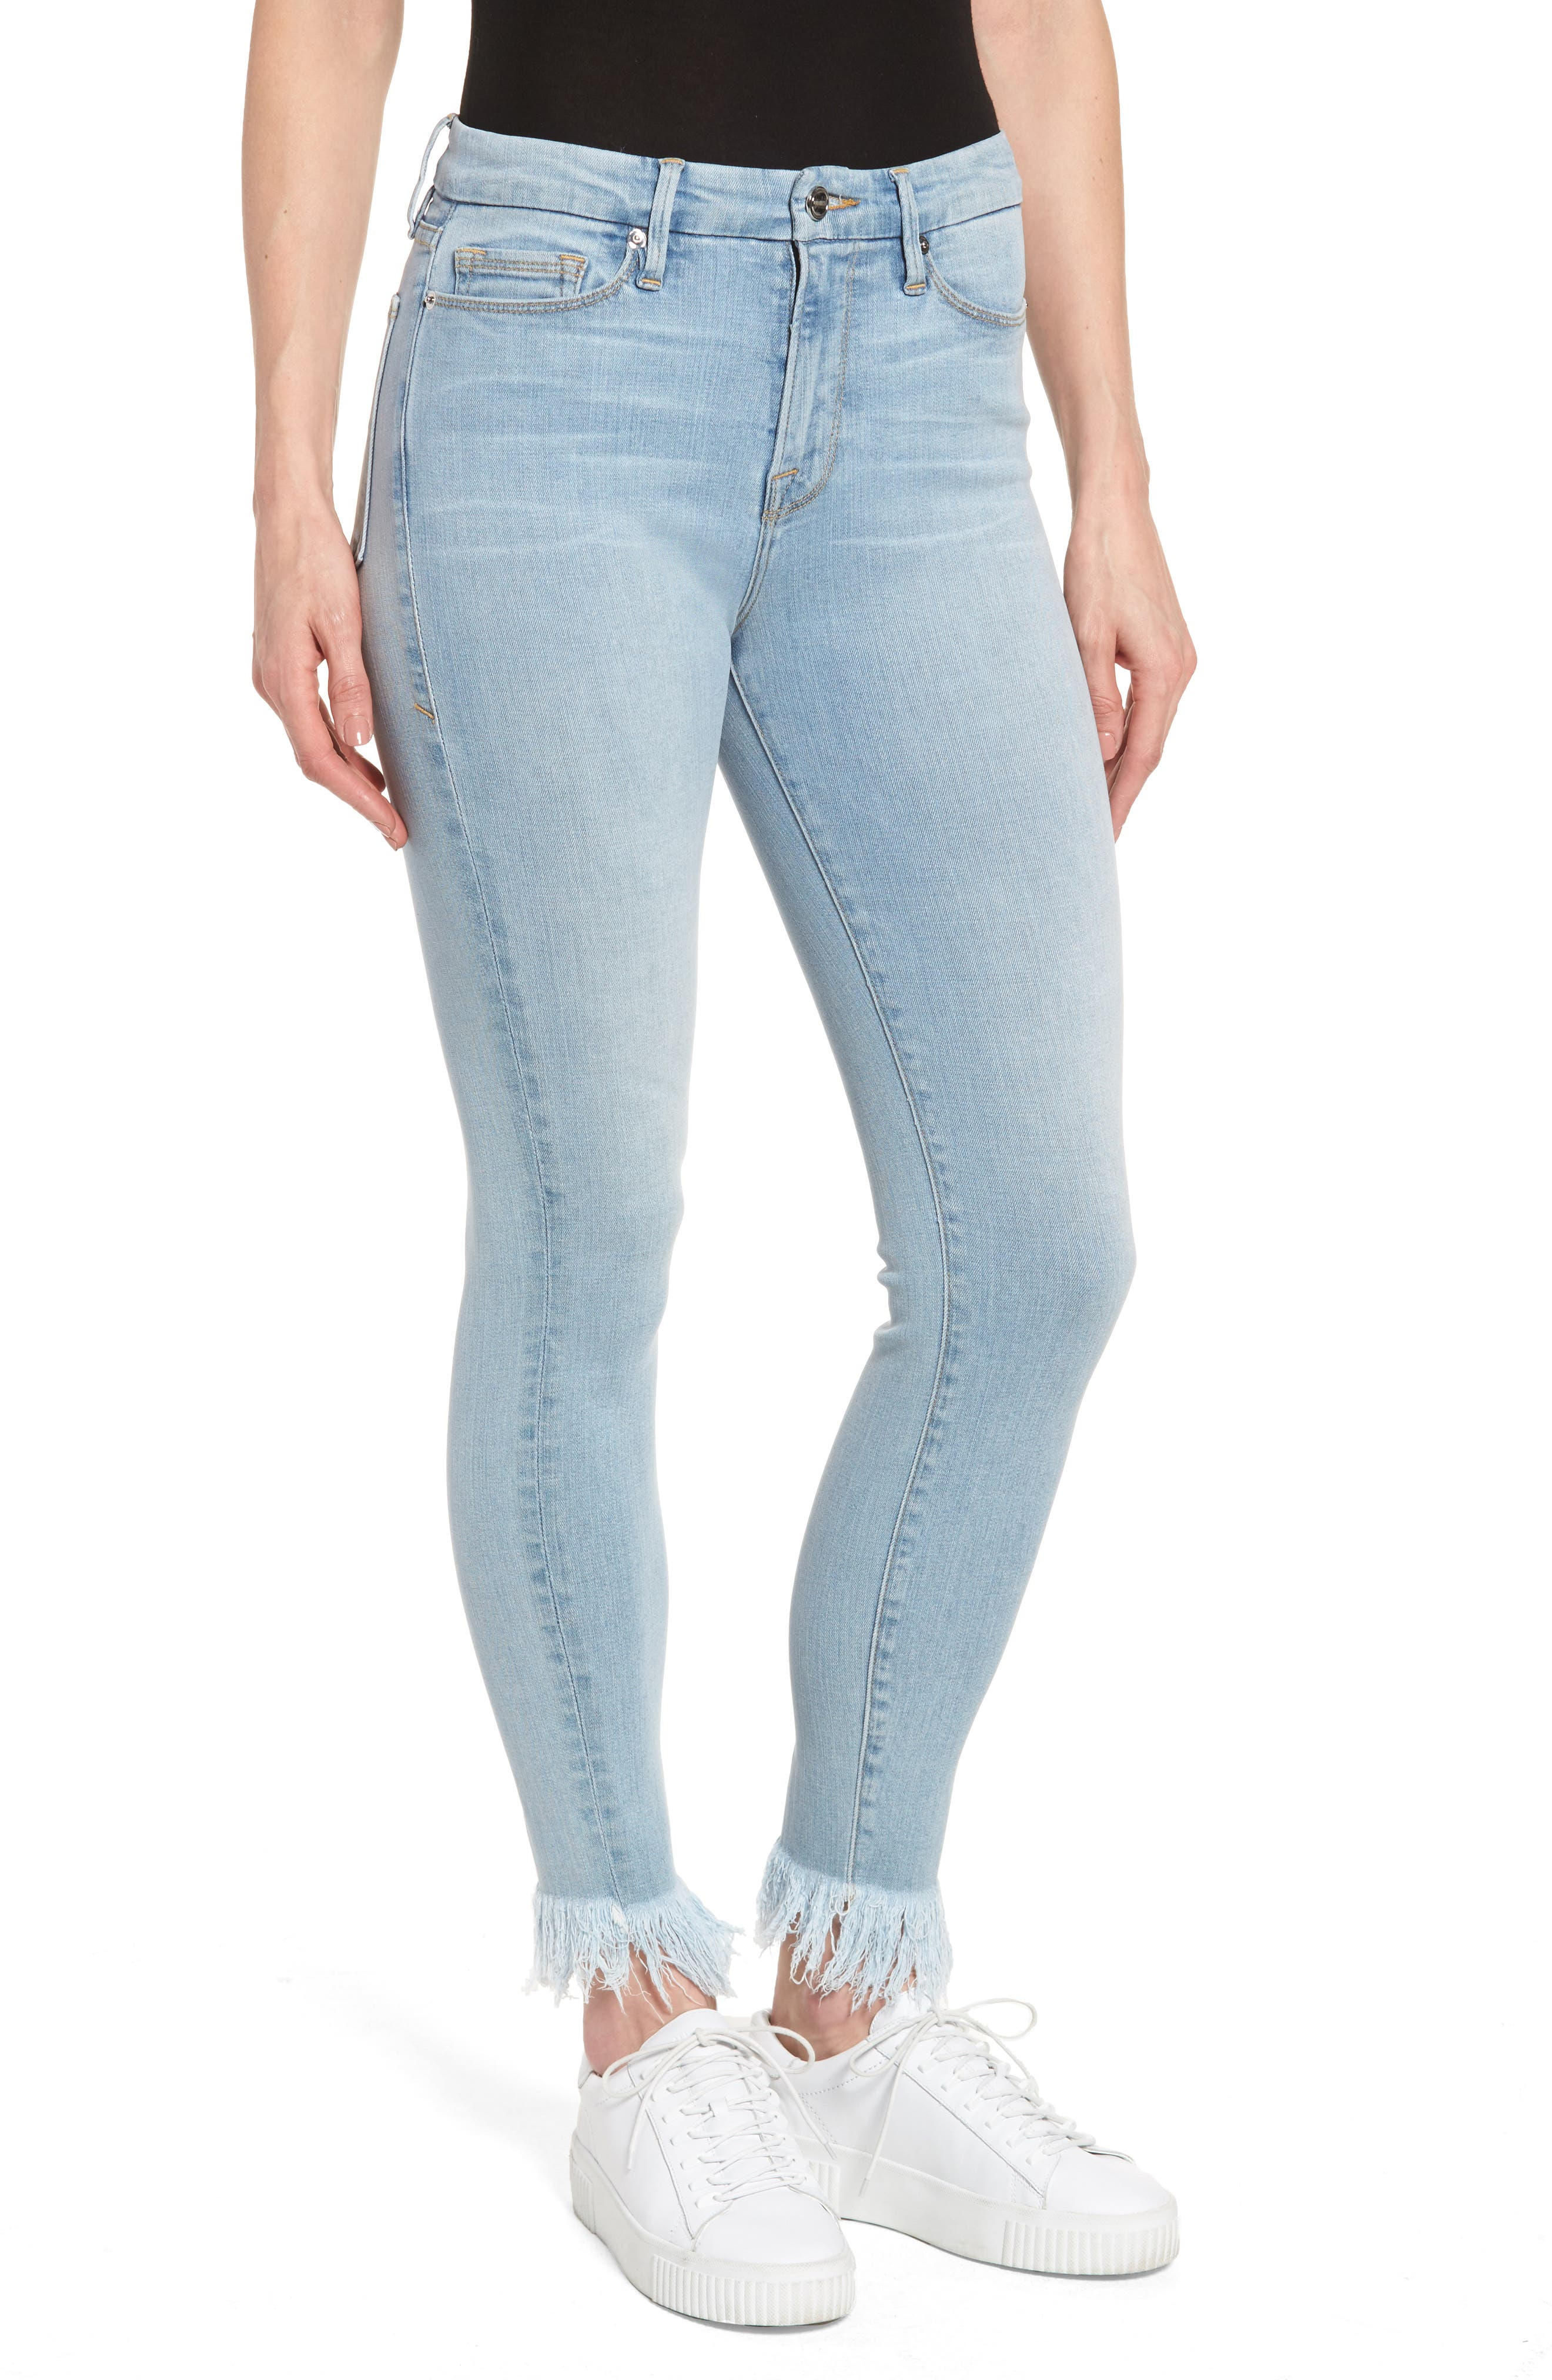 Alternate Image 1 Selected - Good American Good Waist High Waist Frayed Ankle Skinny Jeans (Blue 054) (Extended Sizes)